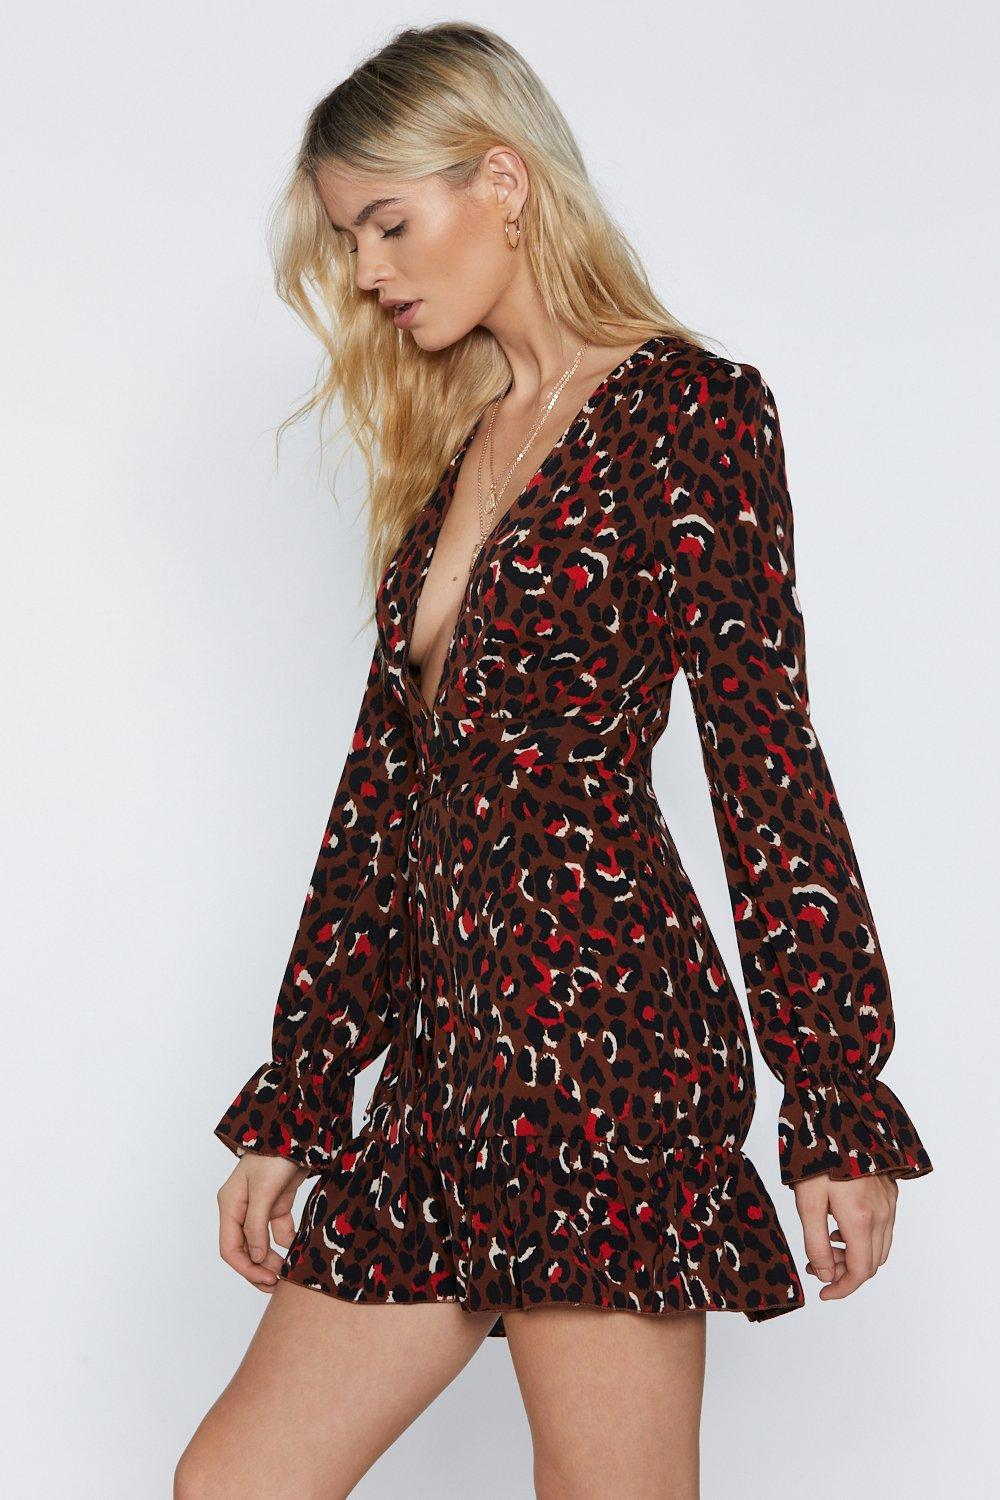 7d08392c4731d5 Leopard into First Place V-Neck Dress | Shop Clothes at Nasty Gal!